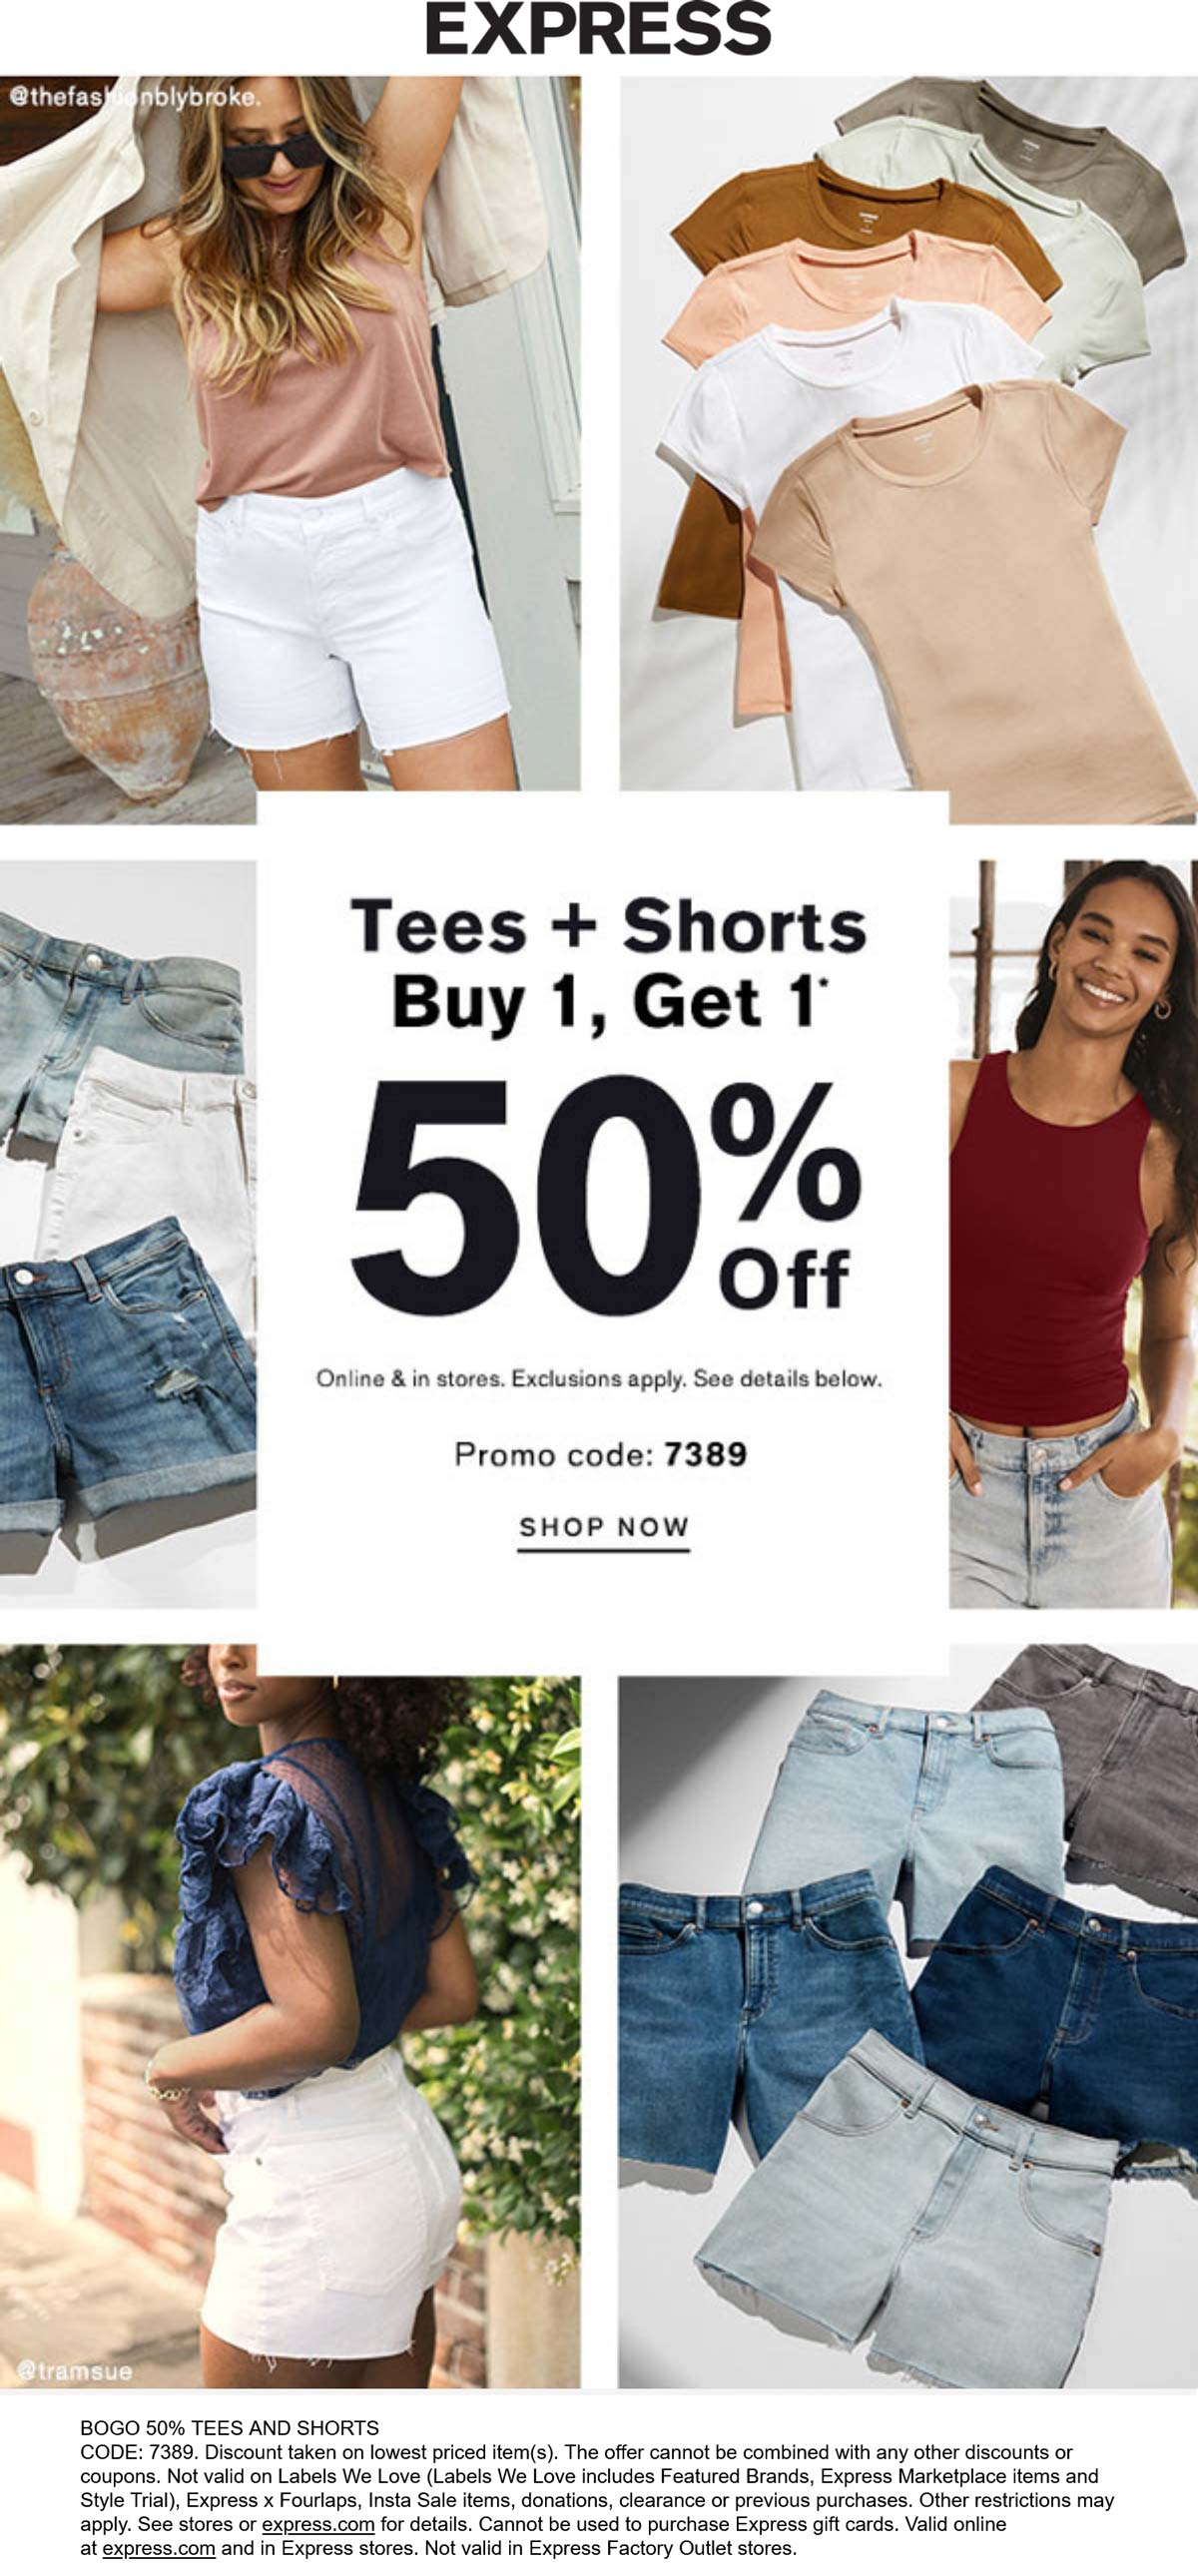 Express stores Coupon  Second tee or shorts 50% off at Express, or online via promo code 7389 #express